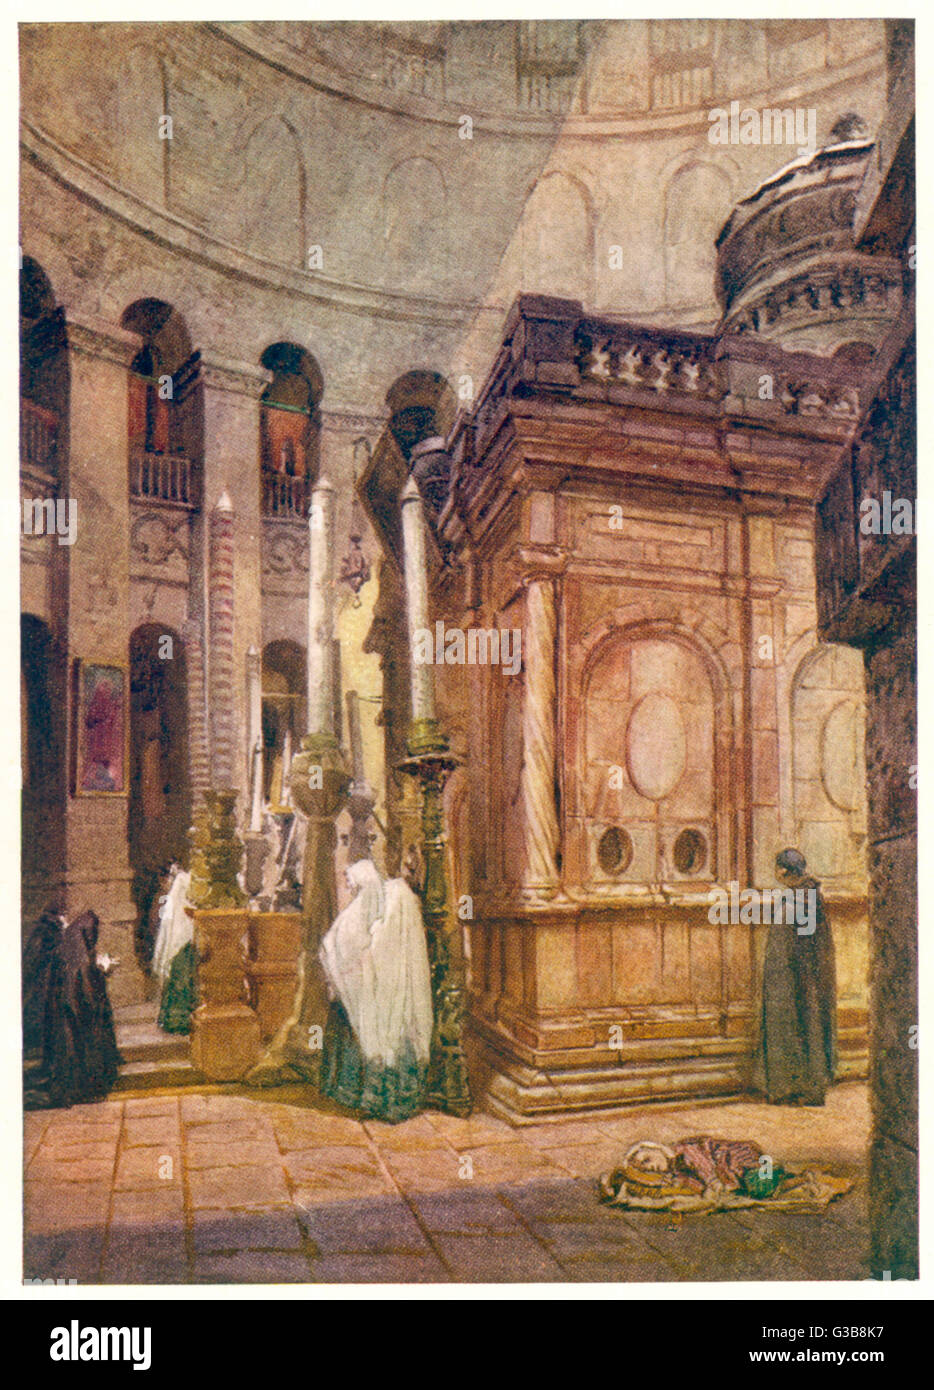 Jerusalem:  inside the church of the Holy Sepulchre       Date: 1901 - Stock Image